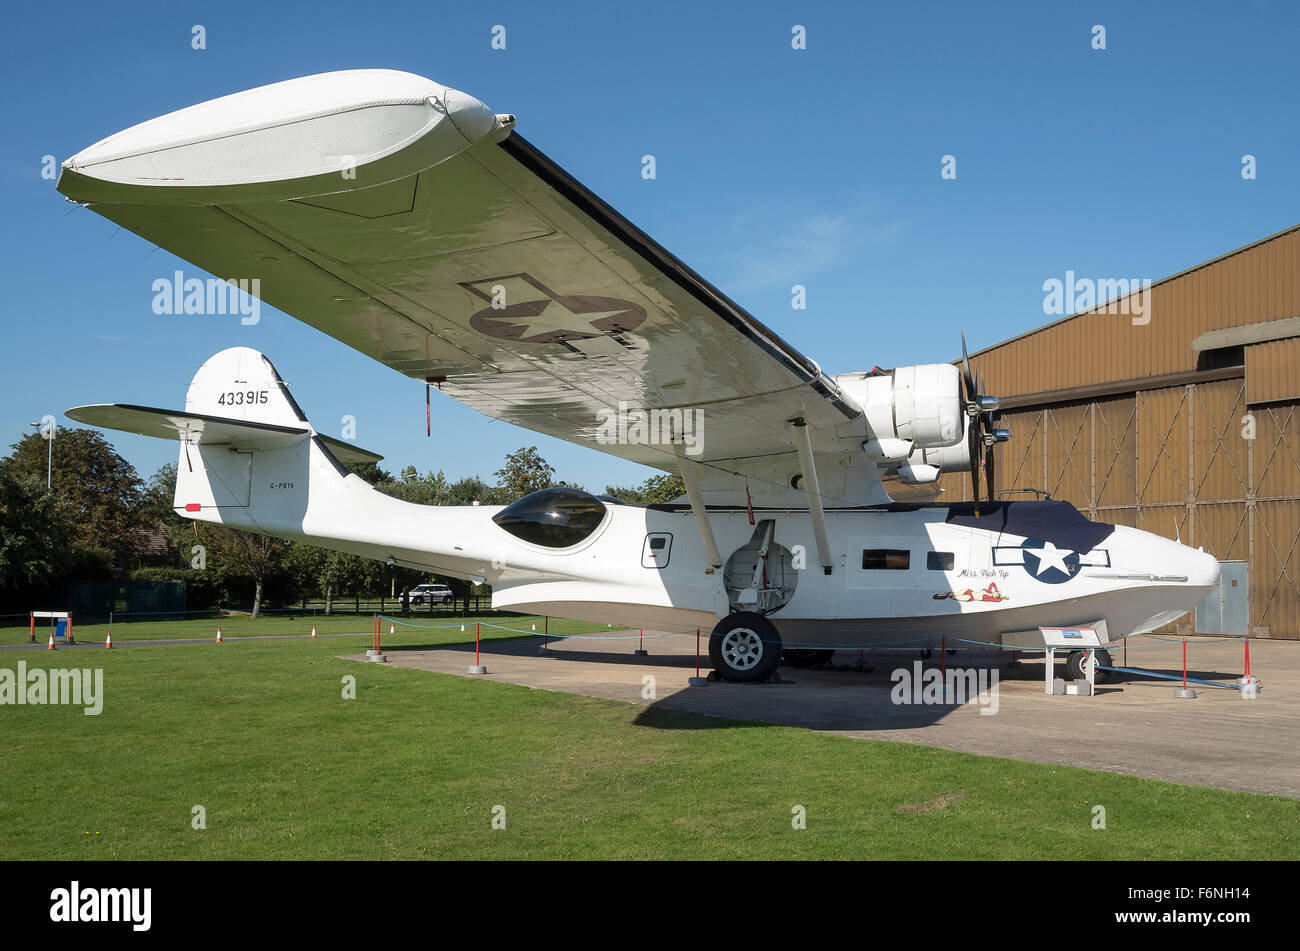 Starboard side of a Consolidated Catalina flying boat at Duxford museum UK - Stock Image